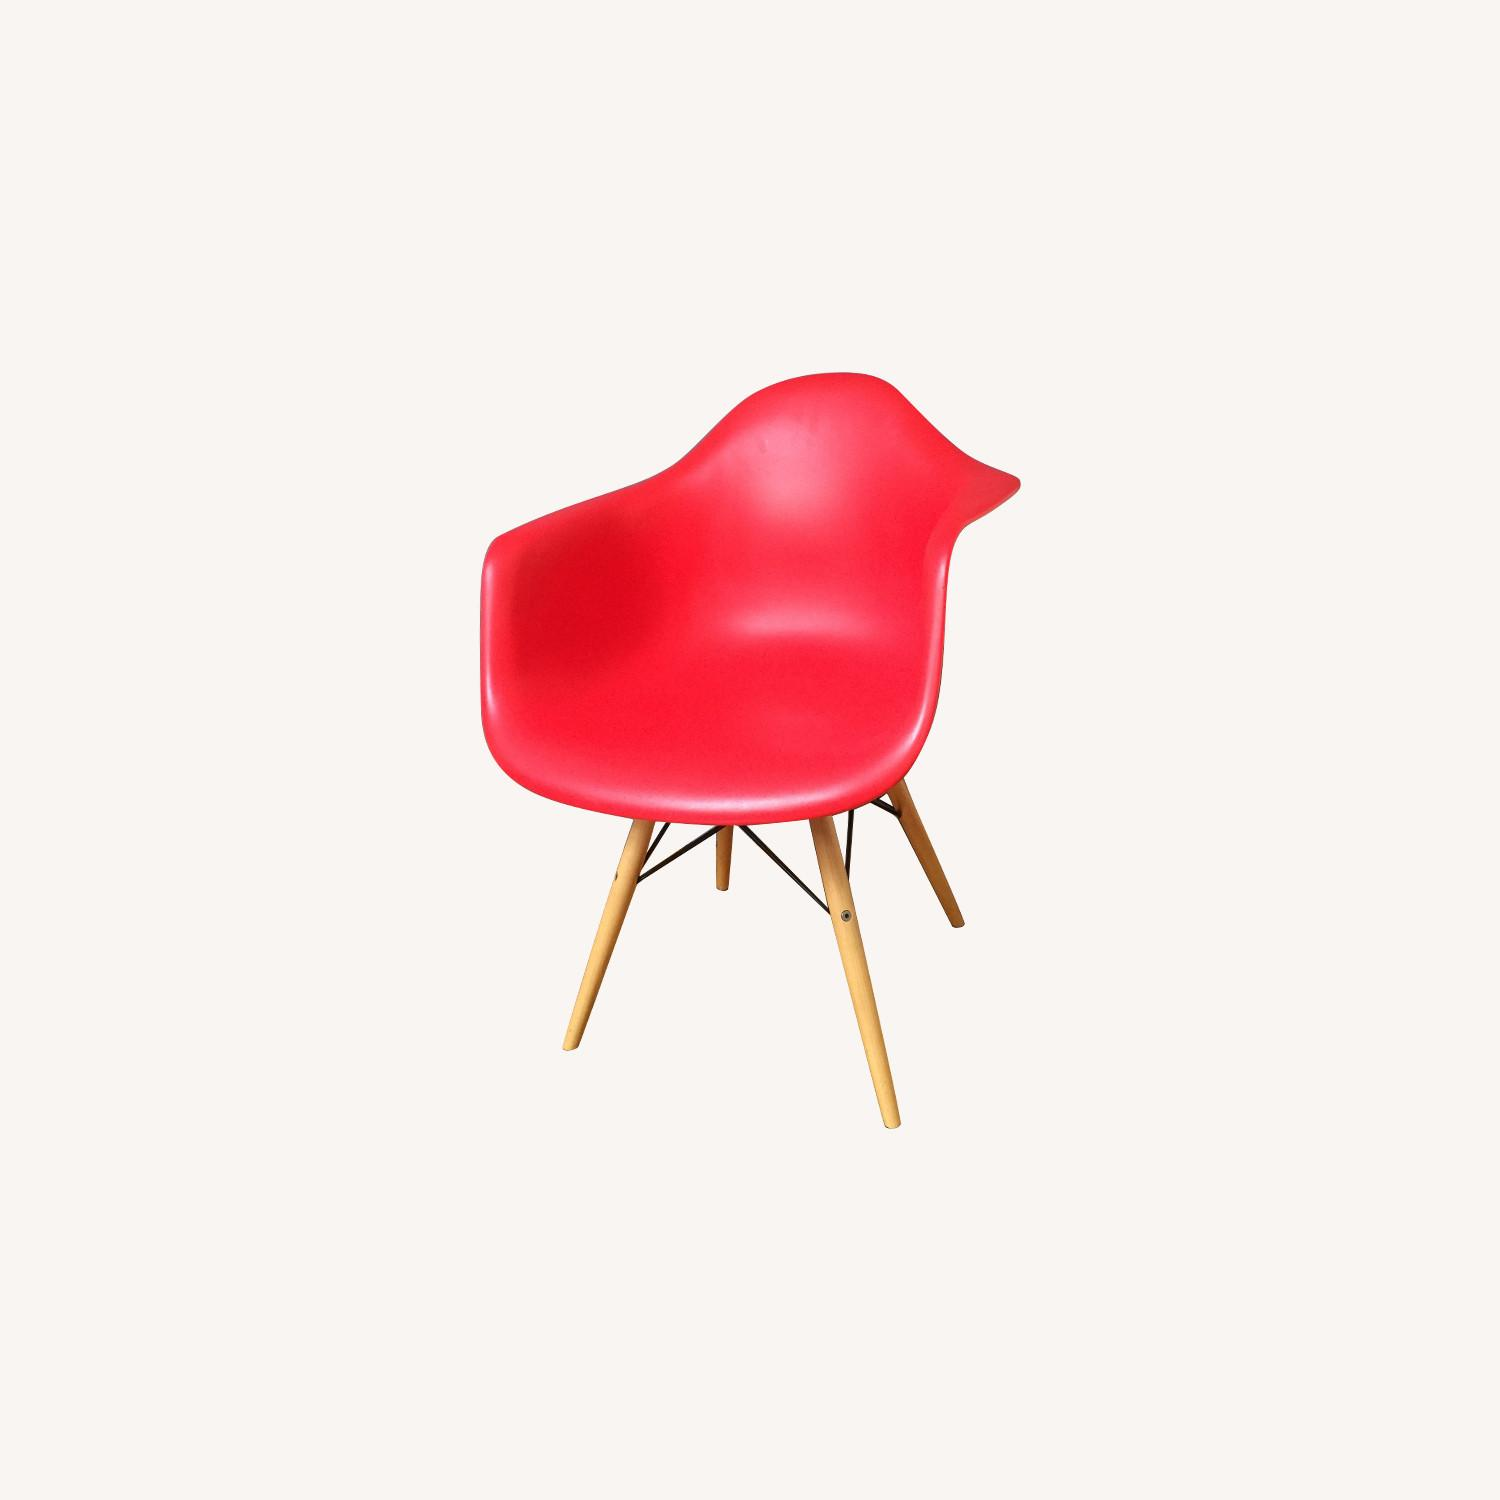 Replica Eames Molded Plastic Red Armchair - image-0